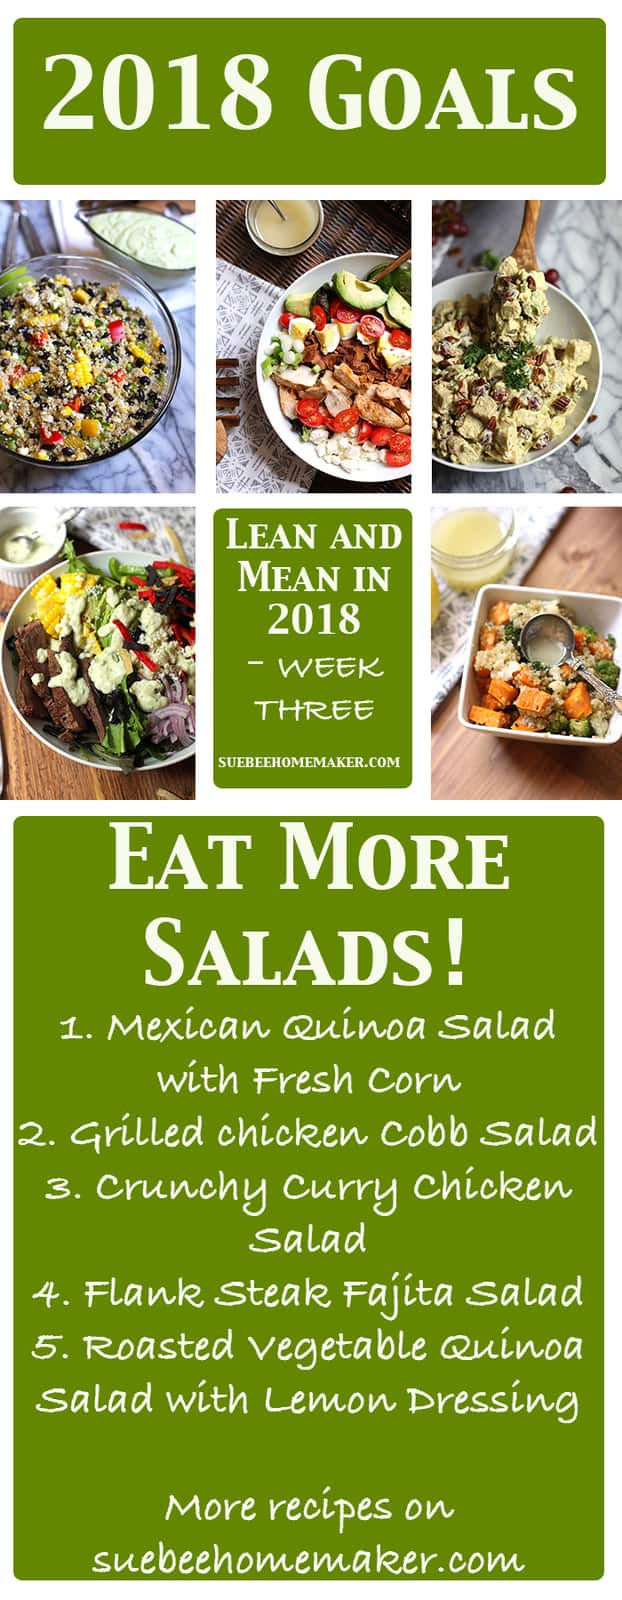 Lean and Mean in 2018 - it's all about balance. My five salad recipes will give you a great jump-start to your clean eating in 2018! | suebeehomemaker.com